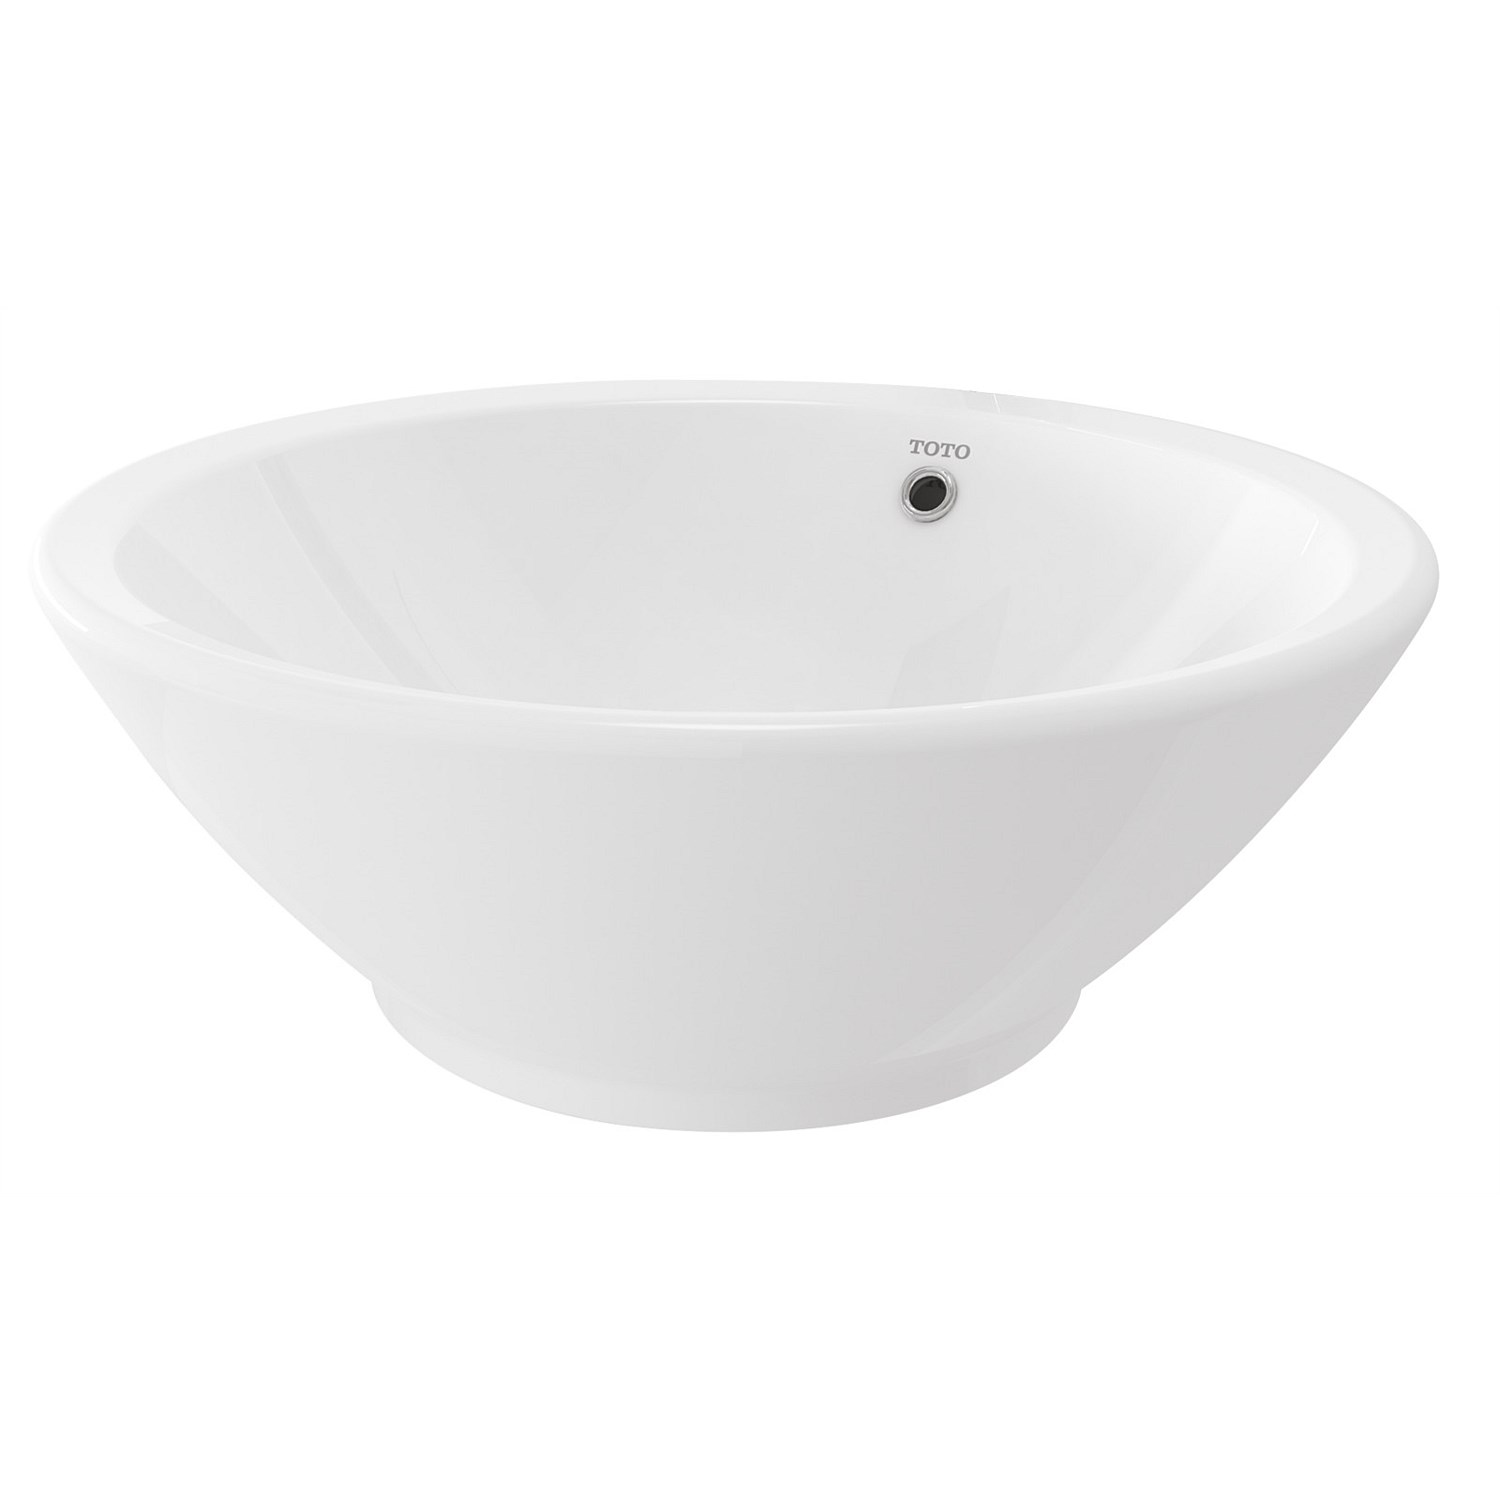 Basins | Plumbing World - Toto Valdes 430mm Round Vessel Counter Top ...